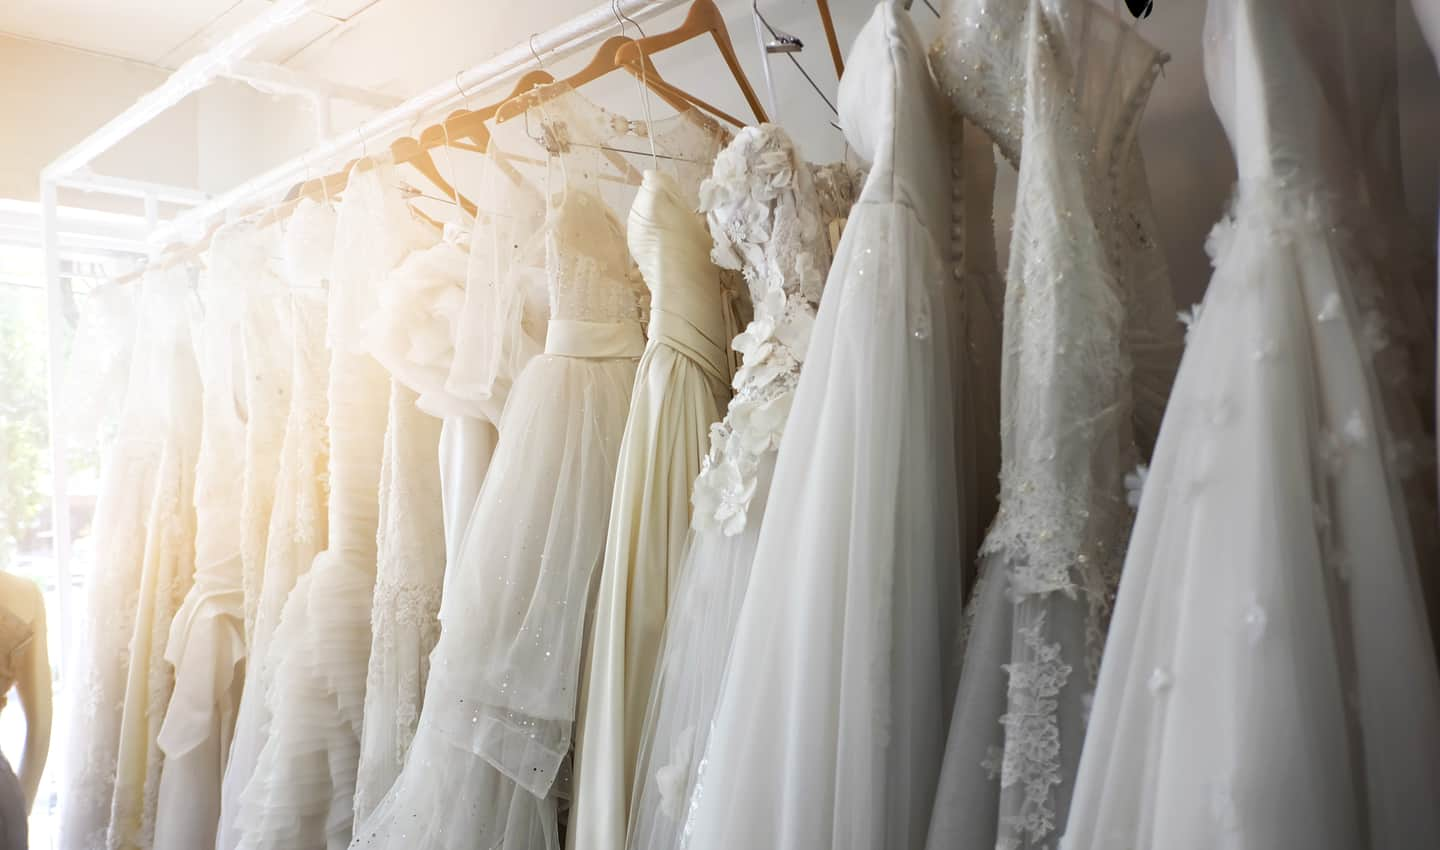 9 Of The Best Places To Sell Your Wedding Dress For Cash Dollarsprout